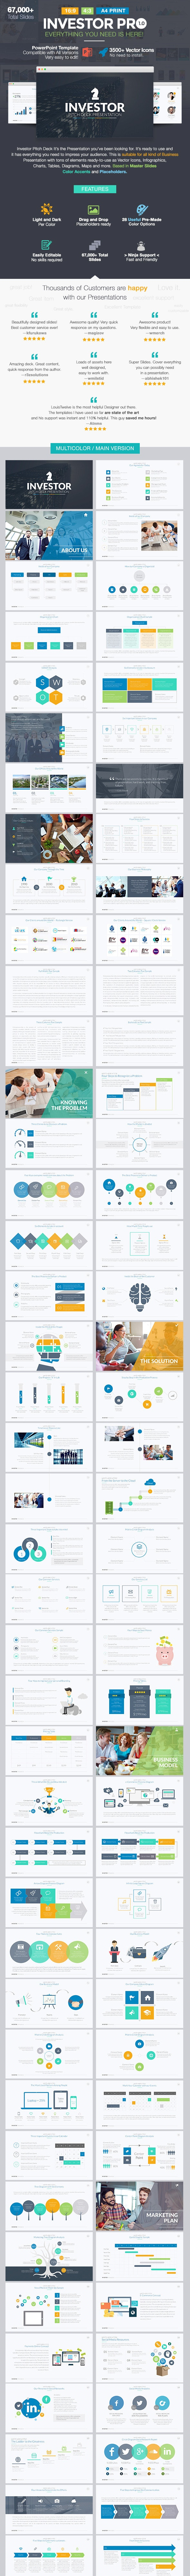 Investor Pitch Deck PowerPoint Template - Pitch Deck PowerPoint Templates